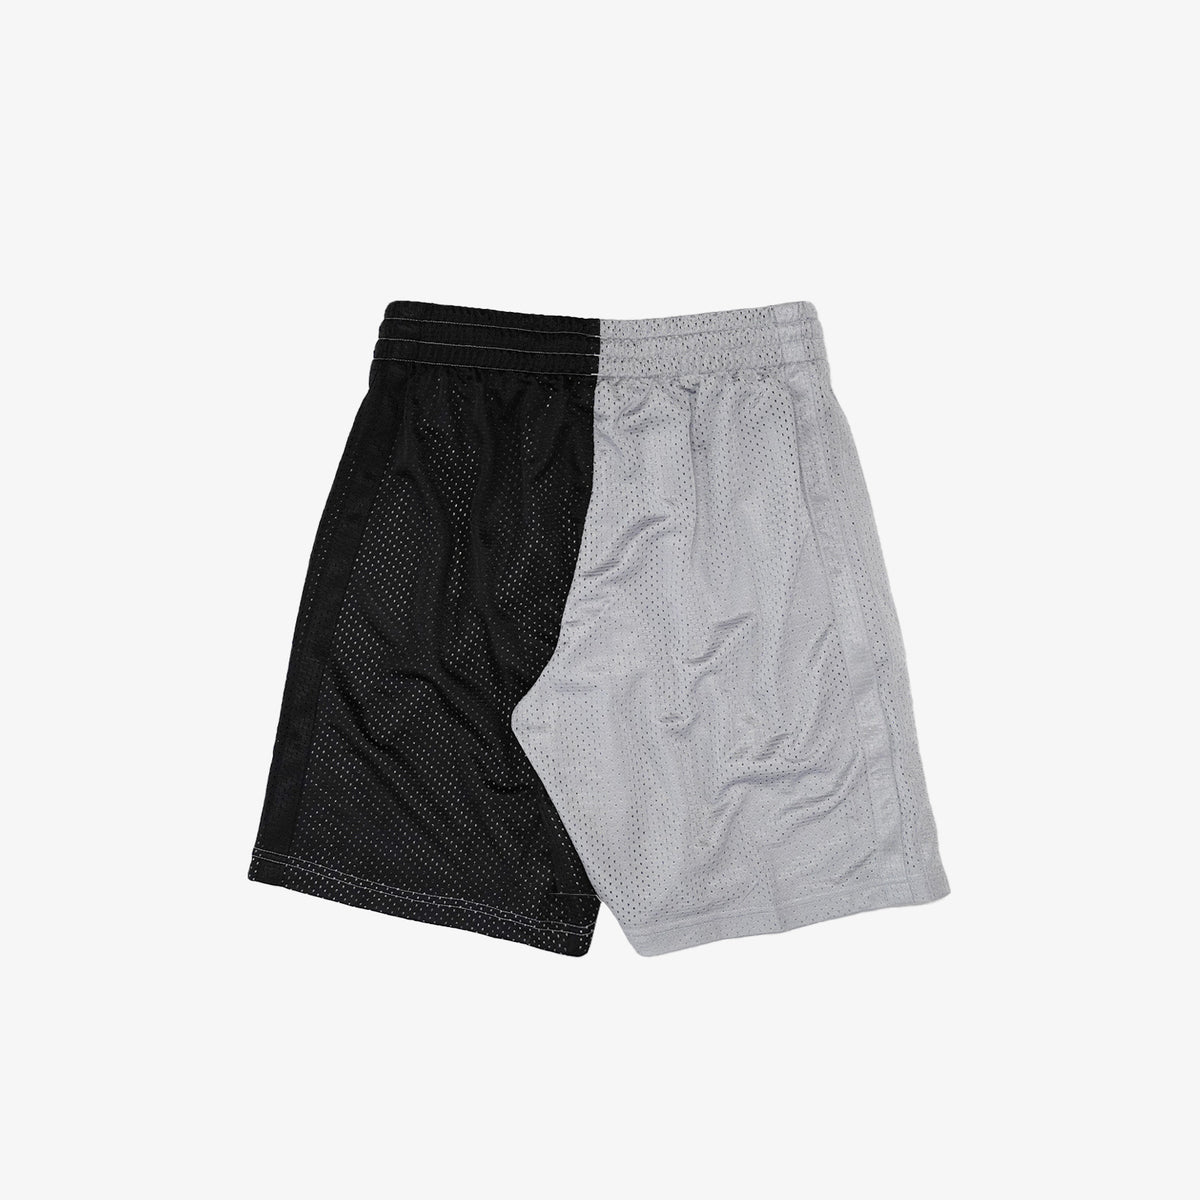 Dame IMA Visionary Shorts - Black/Silver